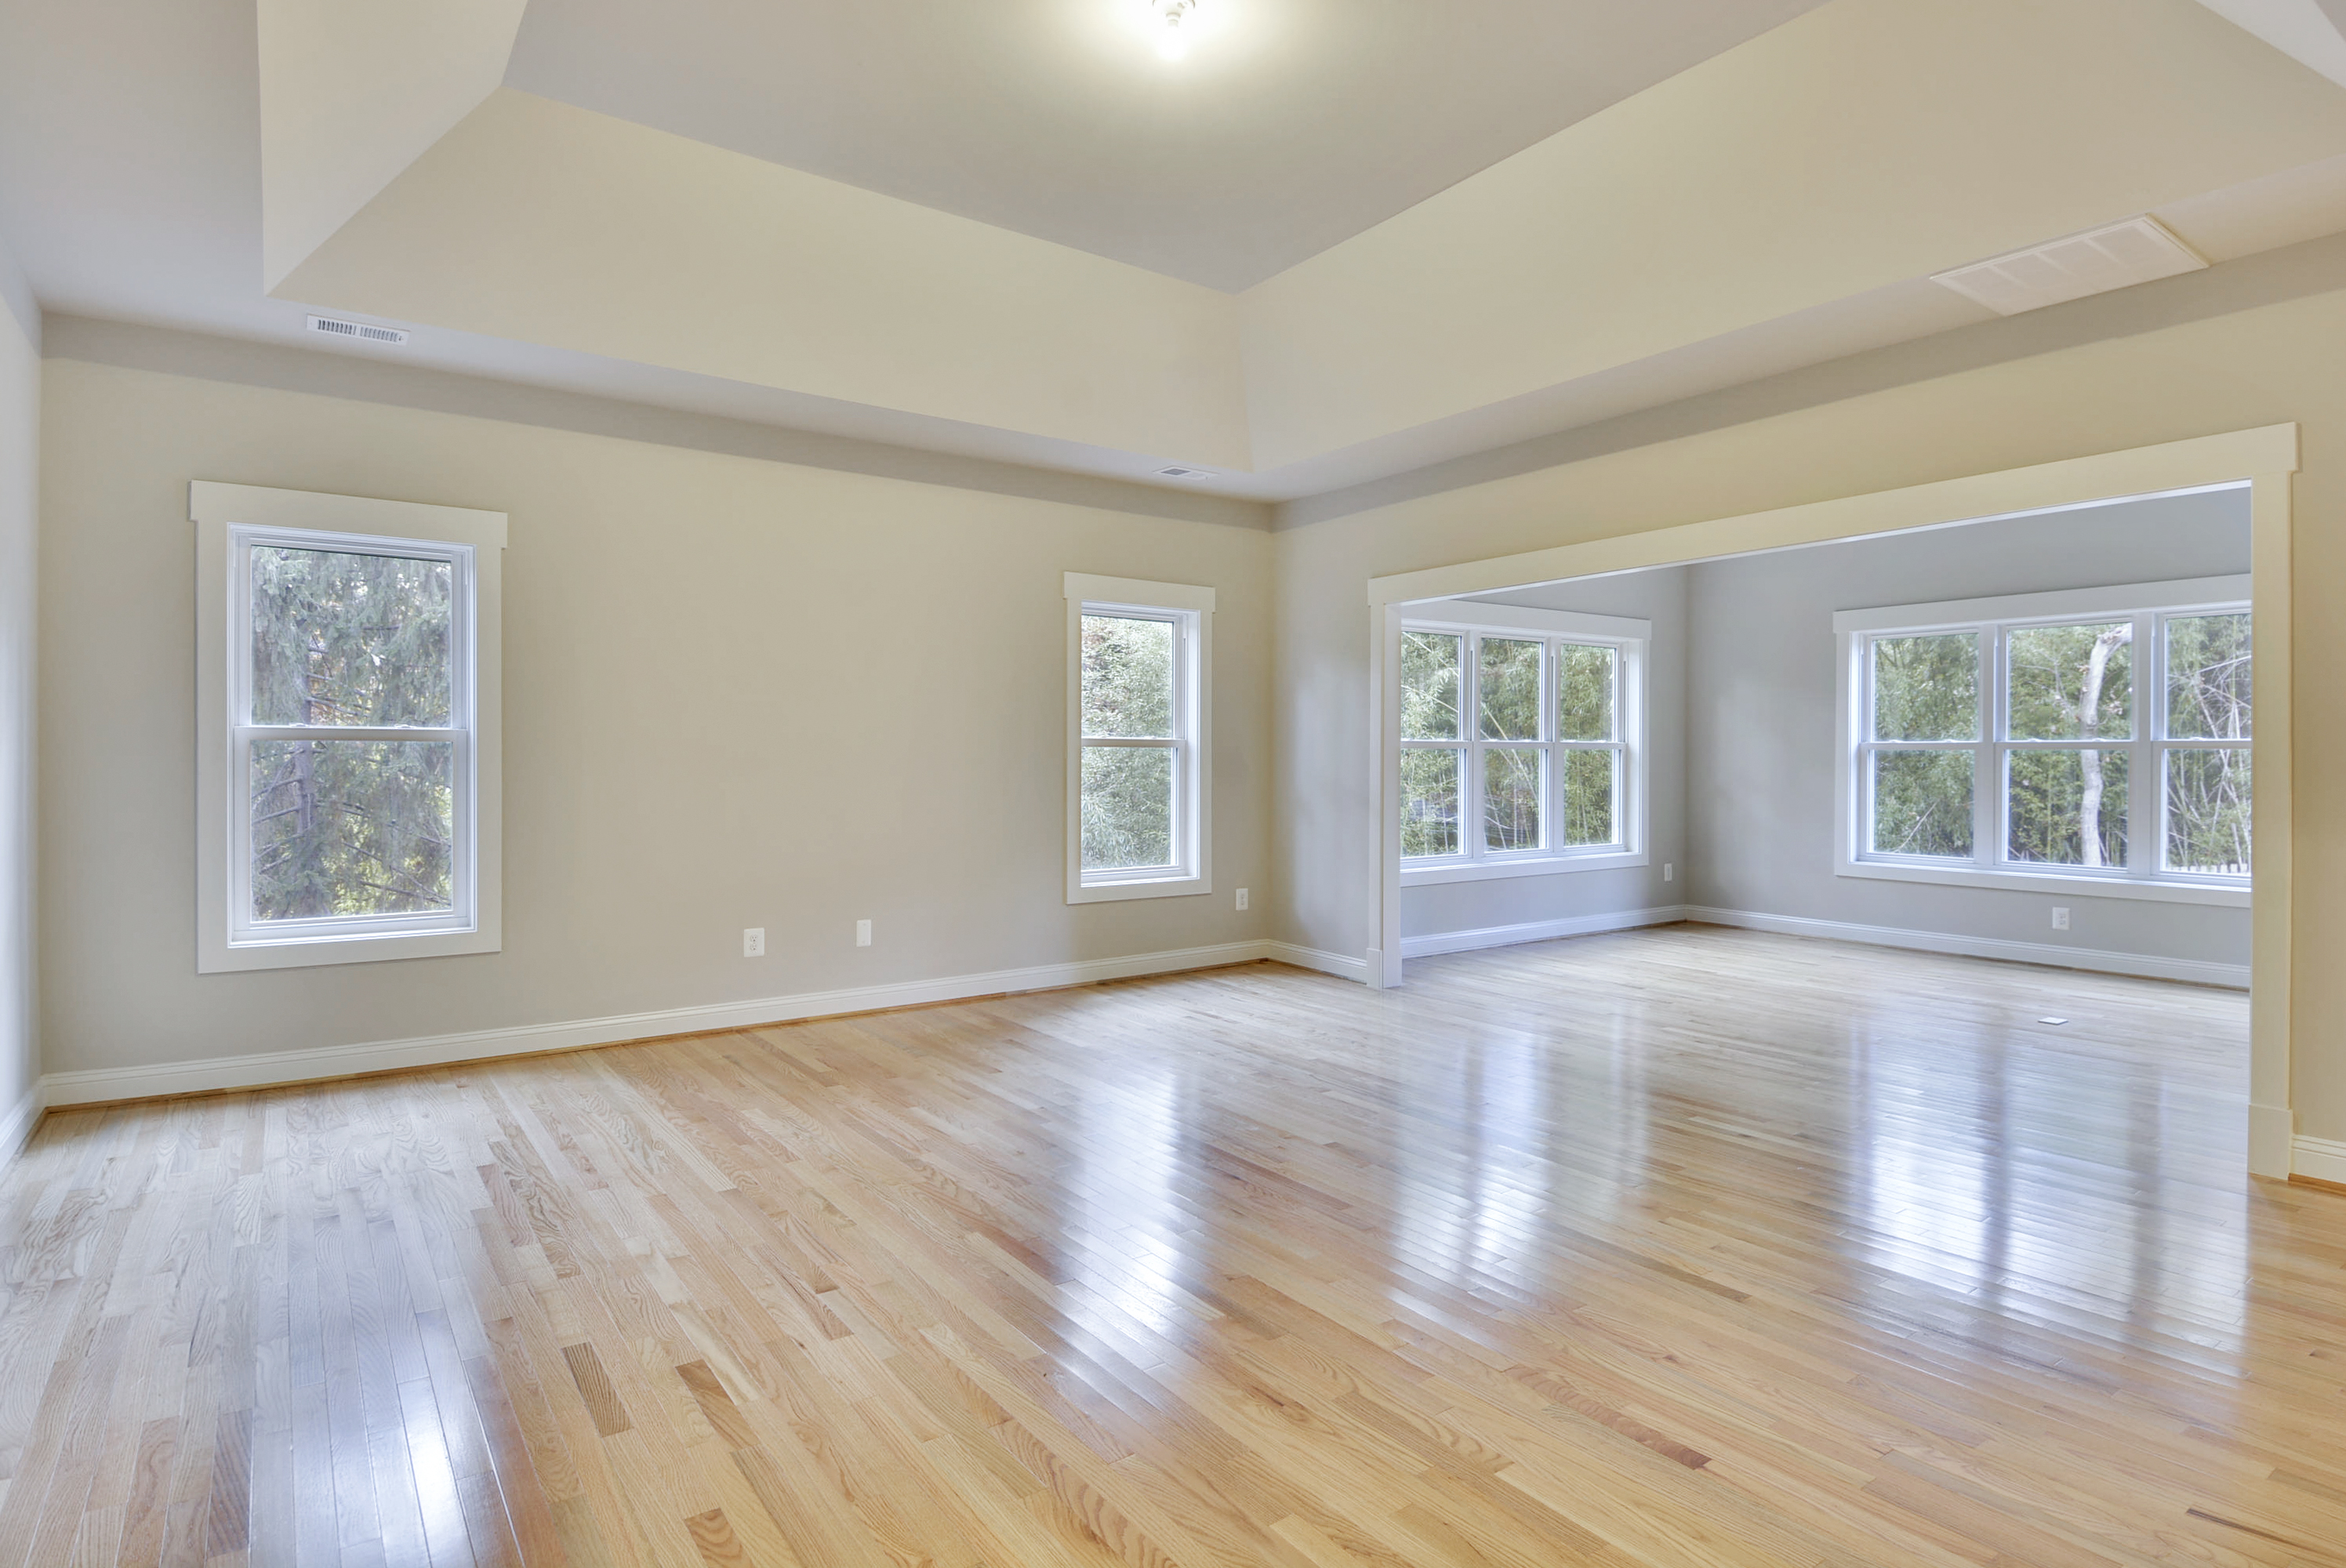 Light medium or dark how to pick a wood floor ndi for Pictures of bedrooms with hardwood floors